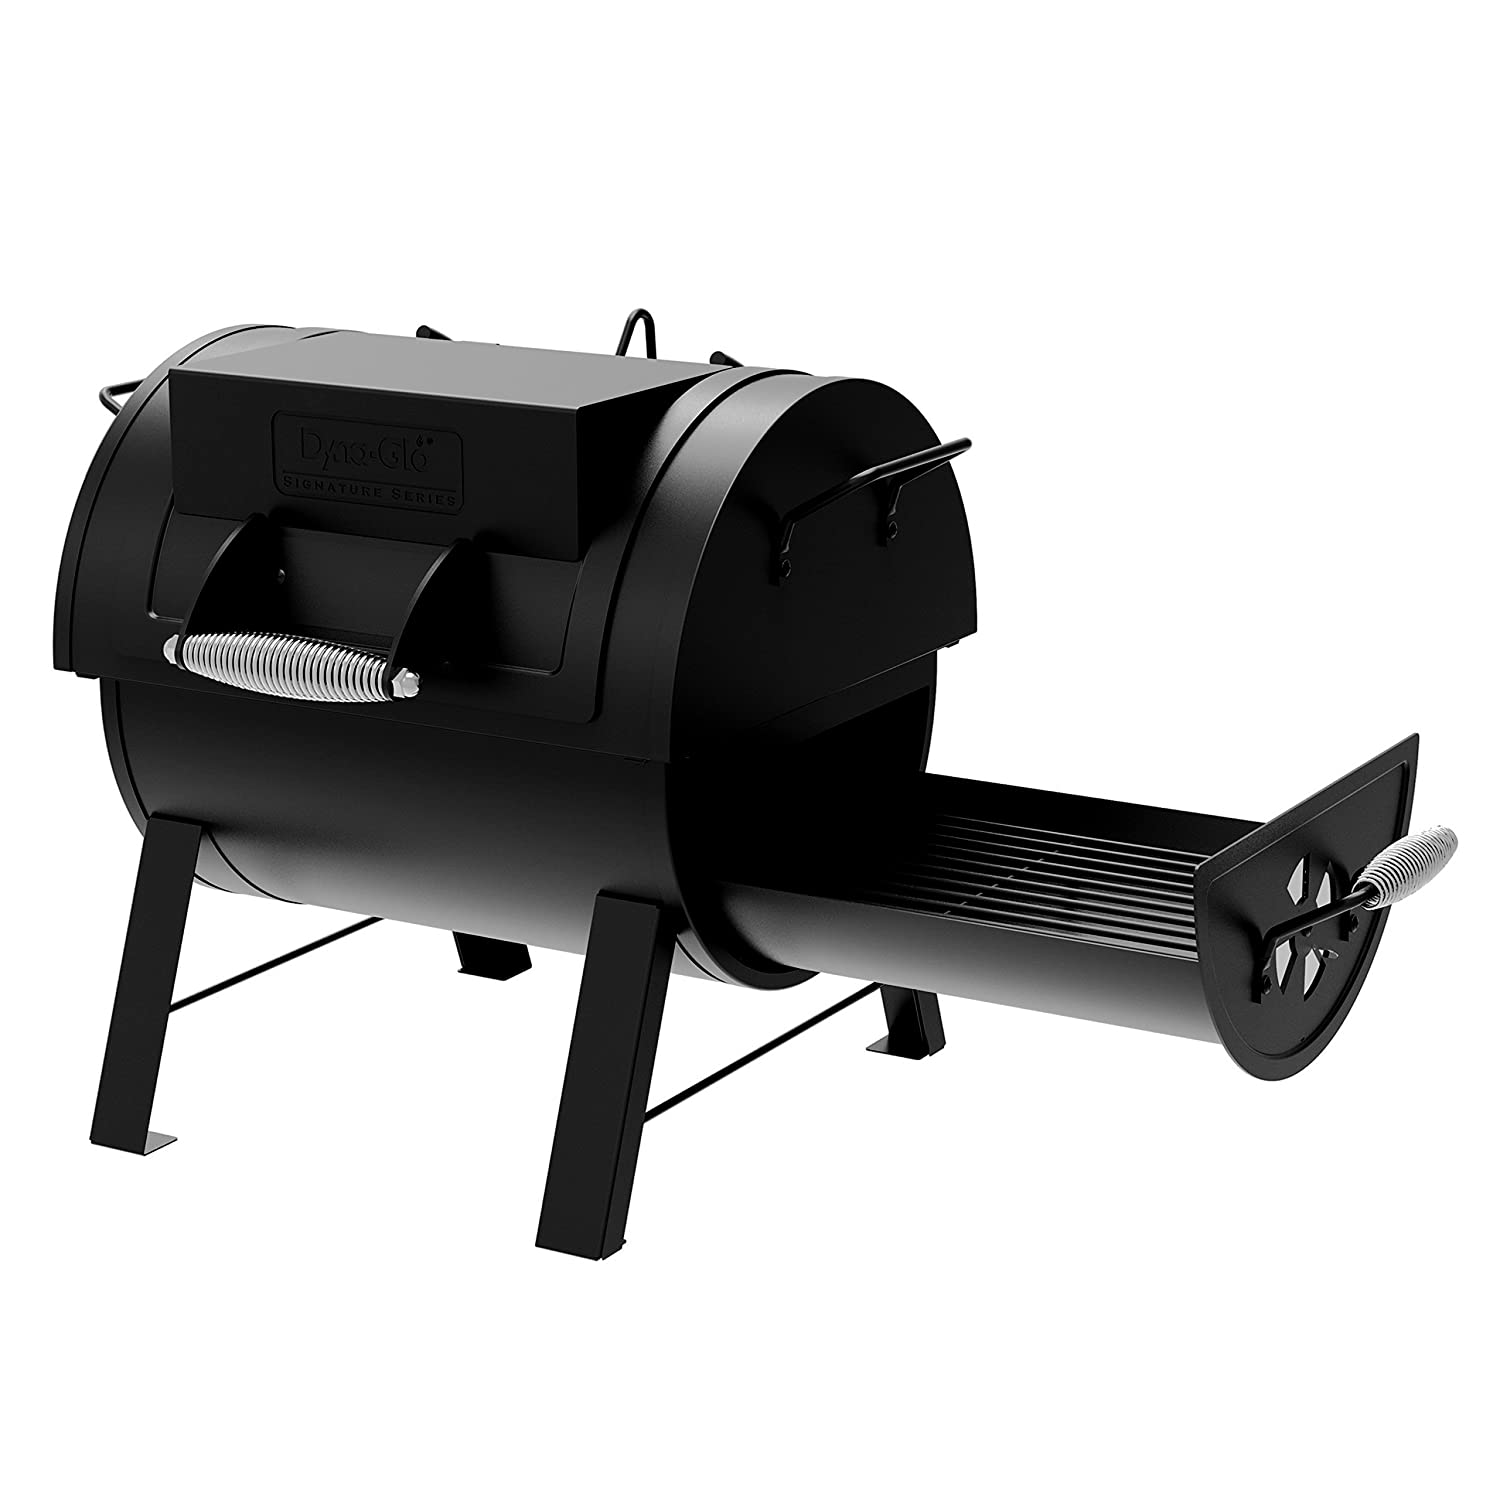 Dyna-Glo DGSS287CB-D Portable Tabletop Charcoal Grill Side Firebox